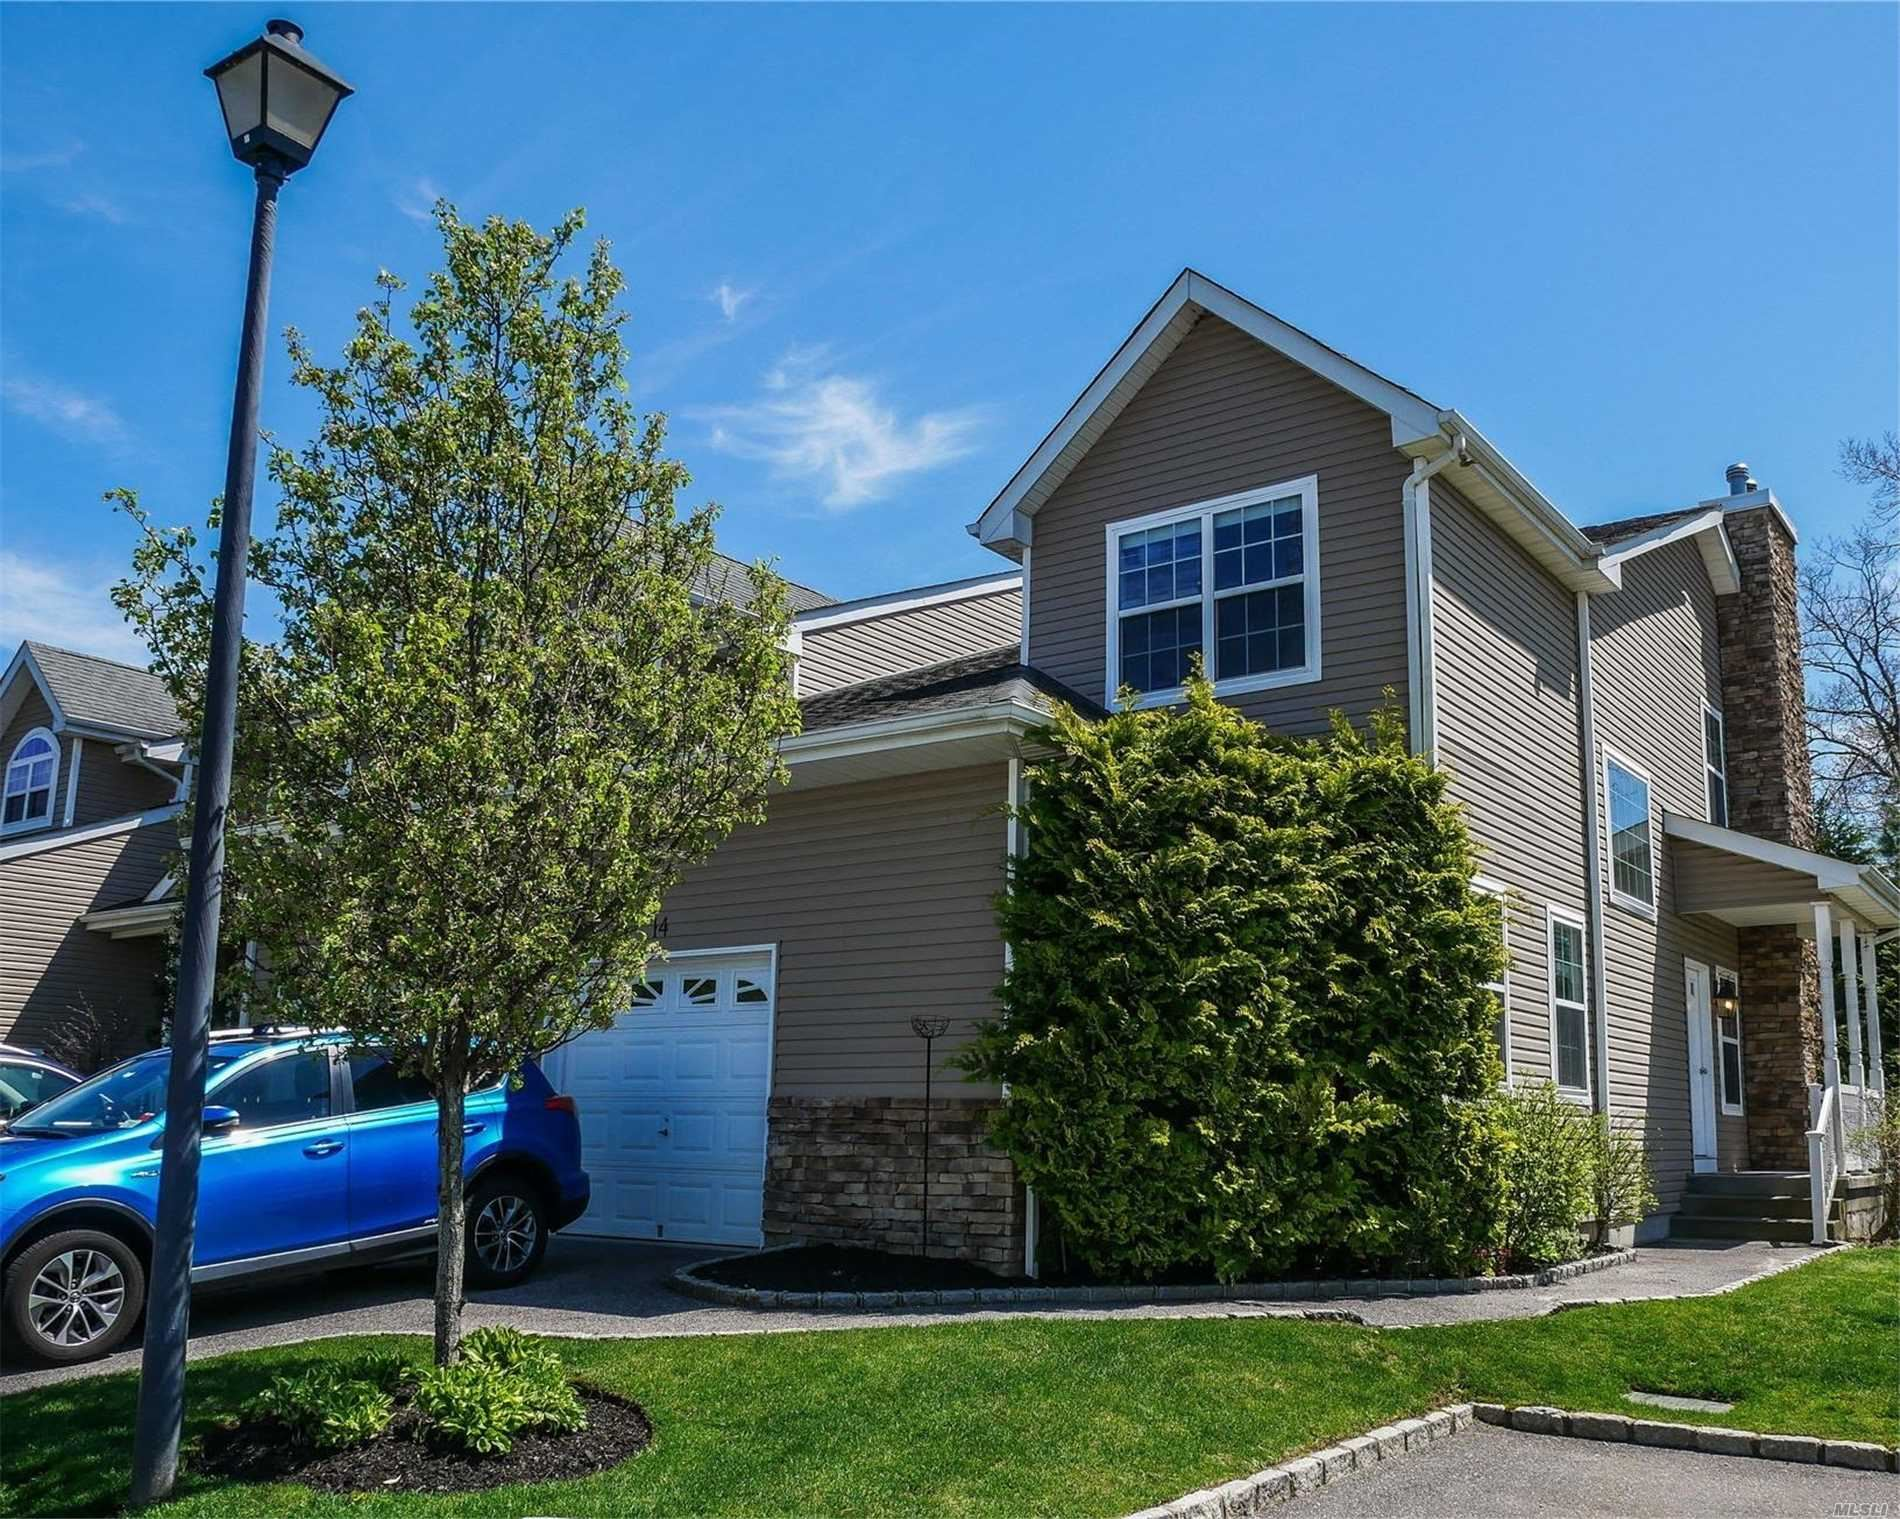 14 Terrace Lane, Patchogue, NY 11772 - MLS#: 3218019